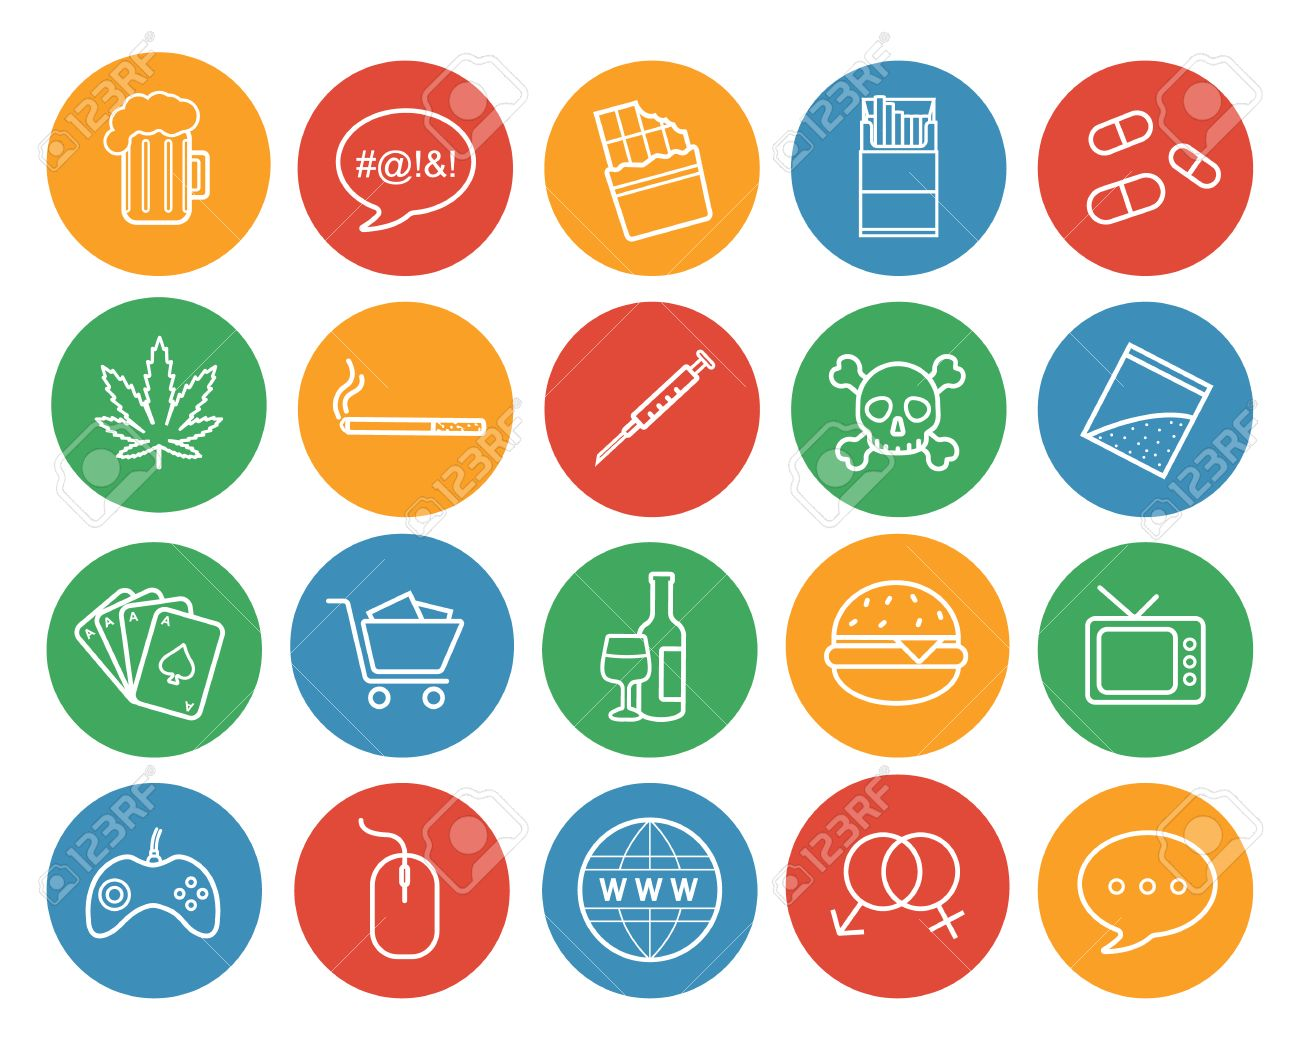 Bad habits color linear icons set. Abuse and addictions round outline symbols. White line art illustrations on color circles. Destructive lifestyle items. Vector infographics elements - 52069121